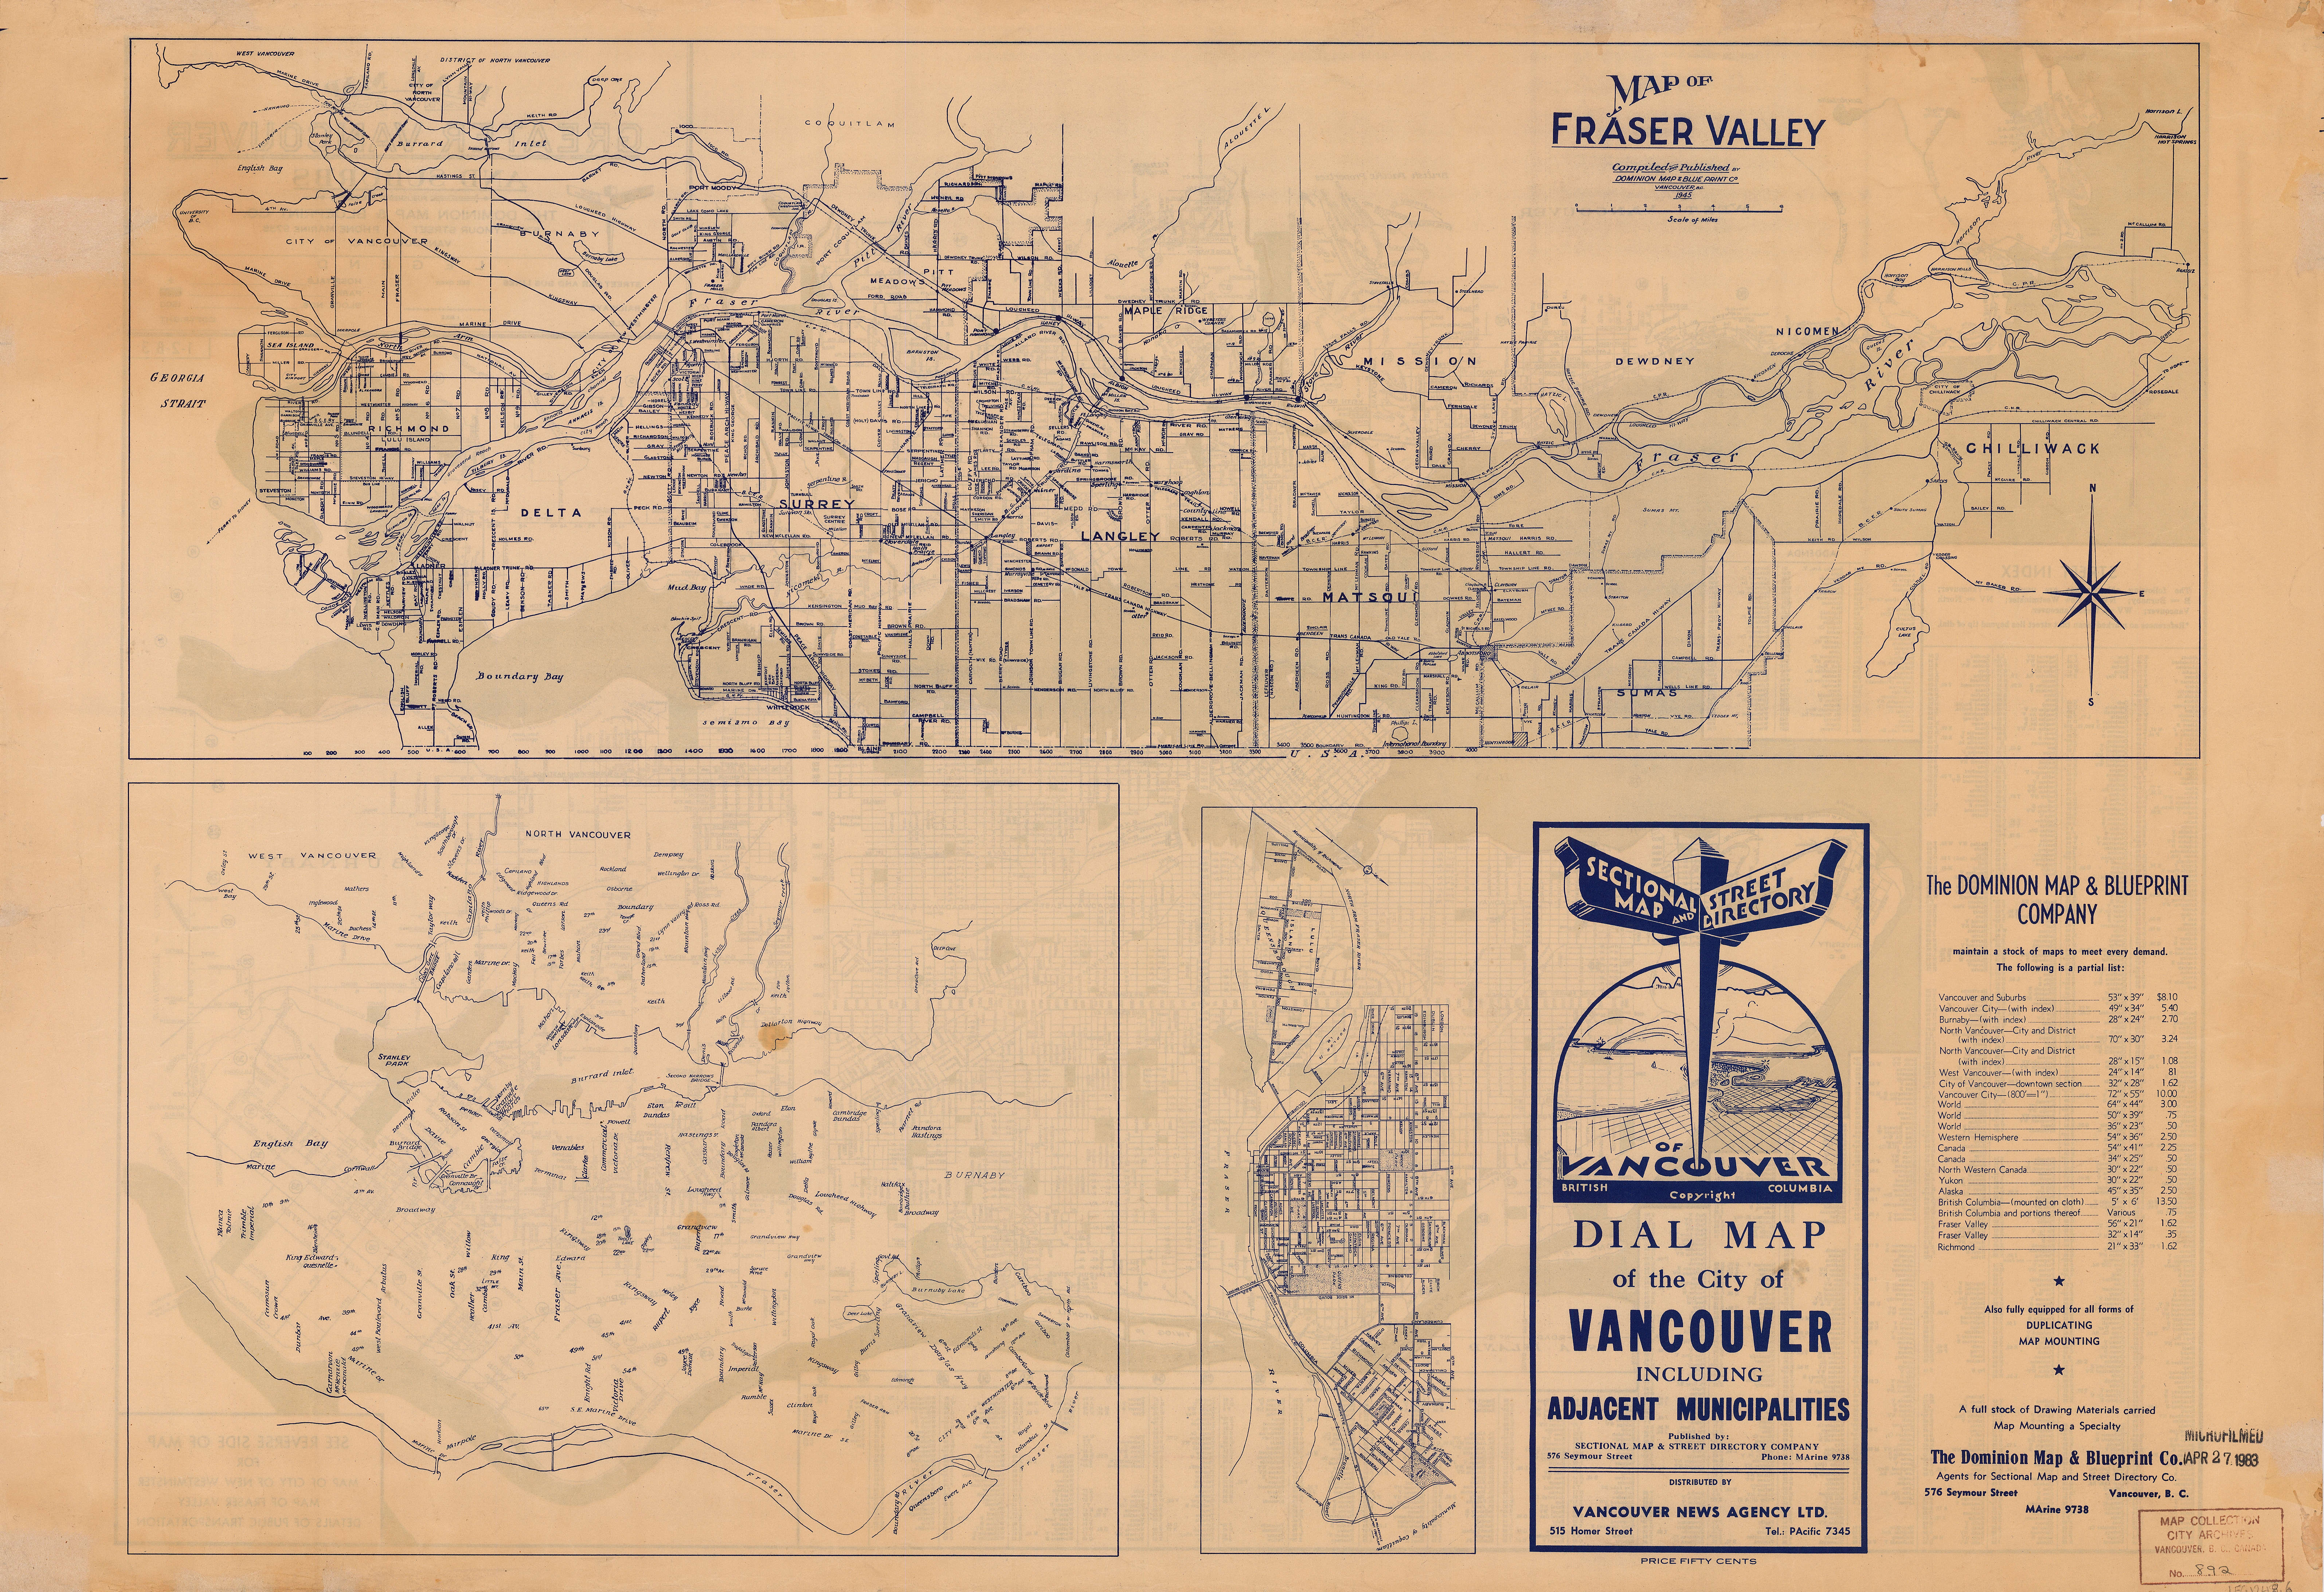 Map of fraser valley city of vancouver archives open original digital object malvernweather Choice Image